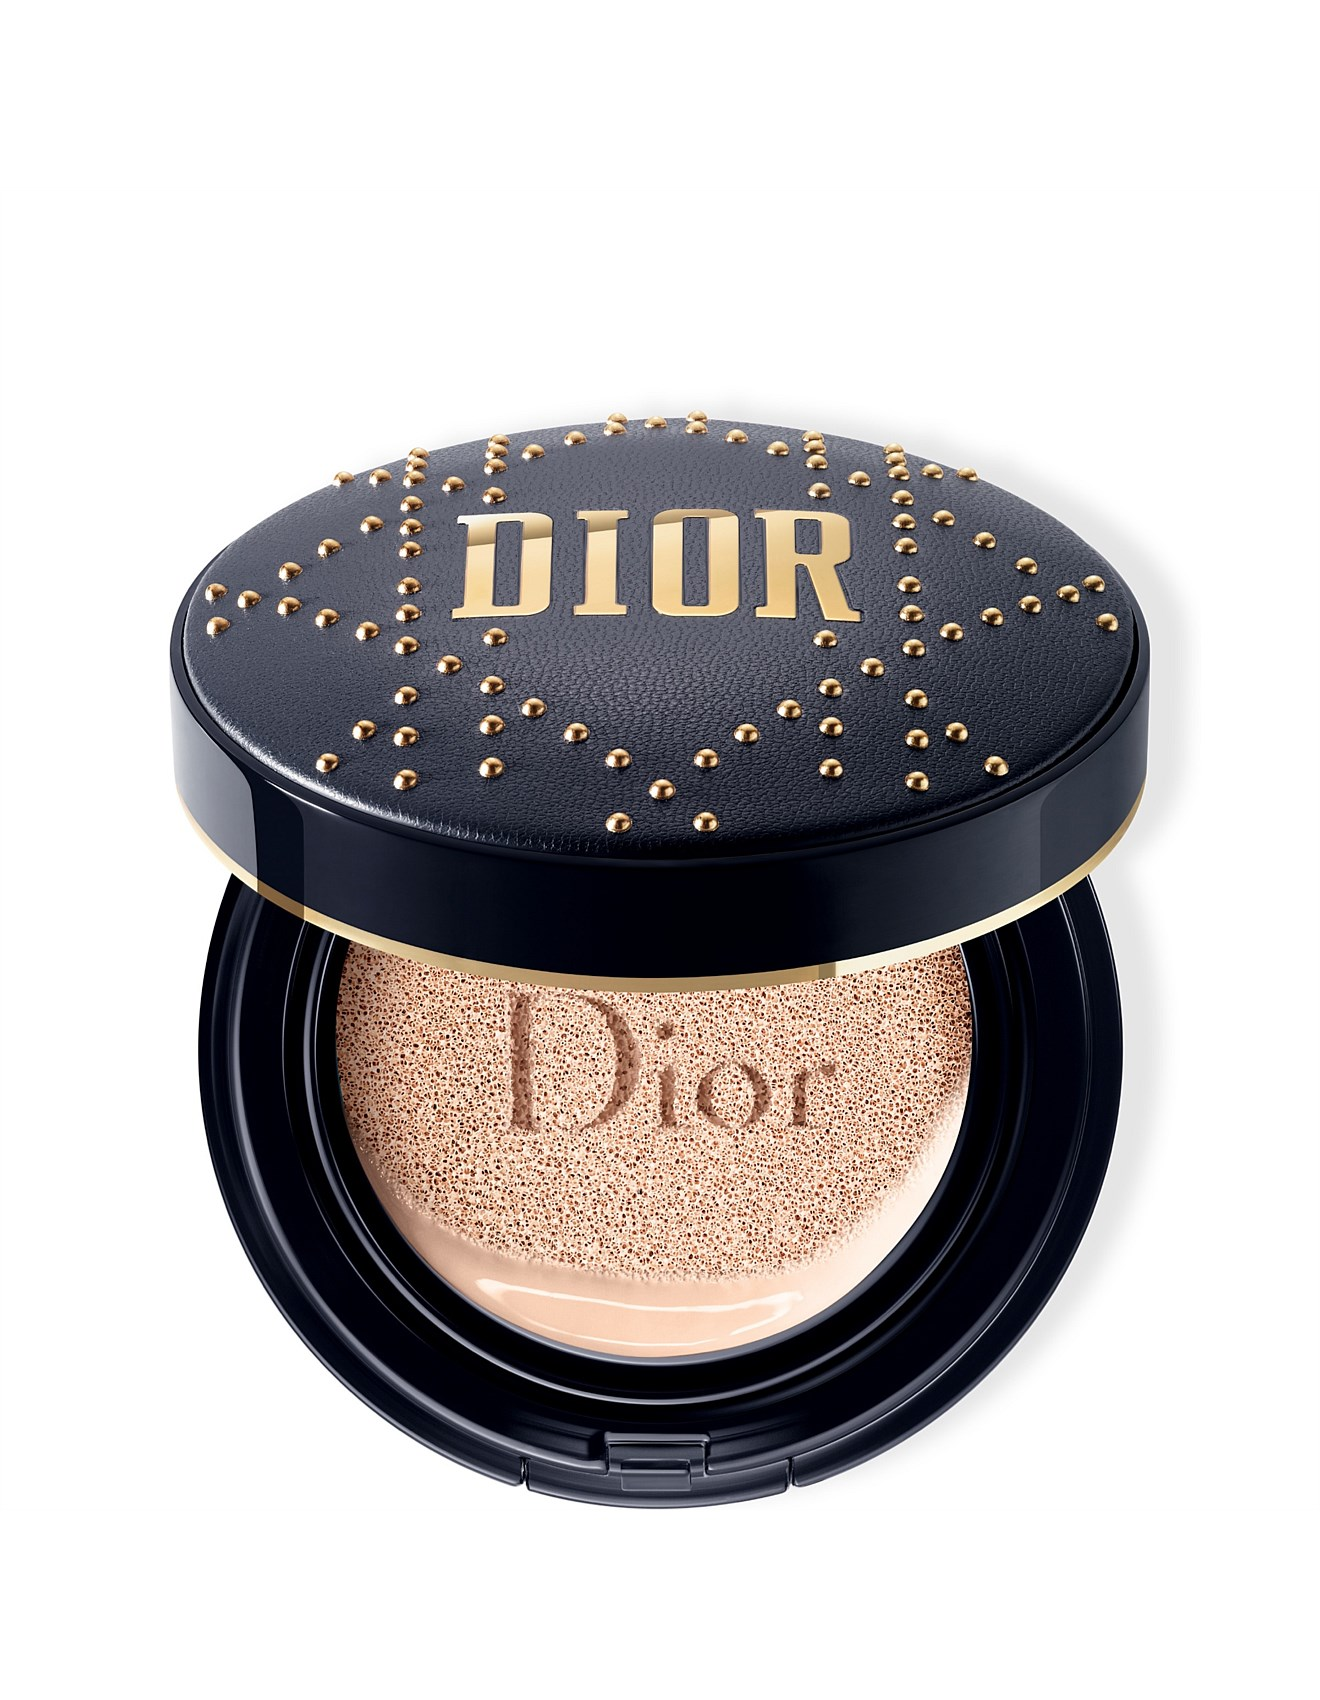 MAKEUP - Diorskin Forever Perfect Cushion Studded Cannage Cushion